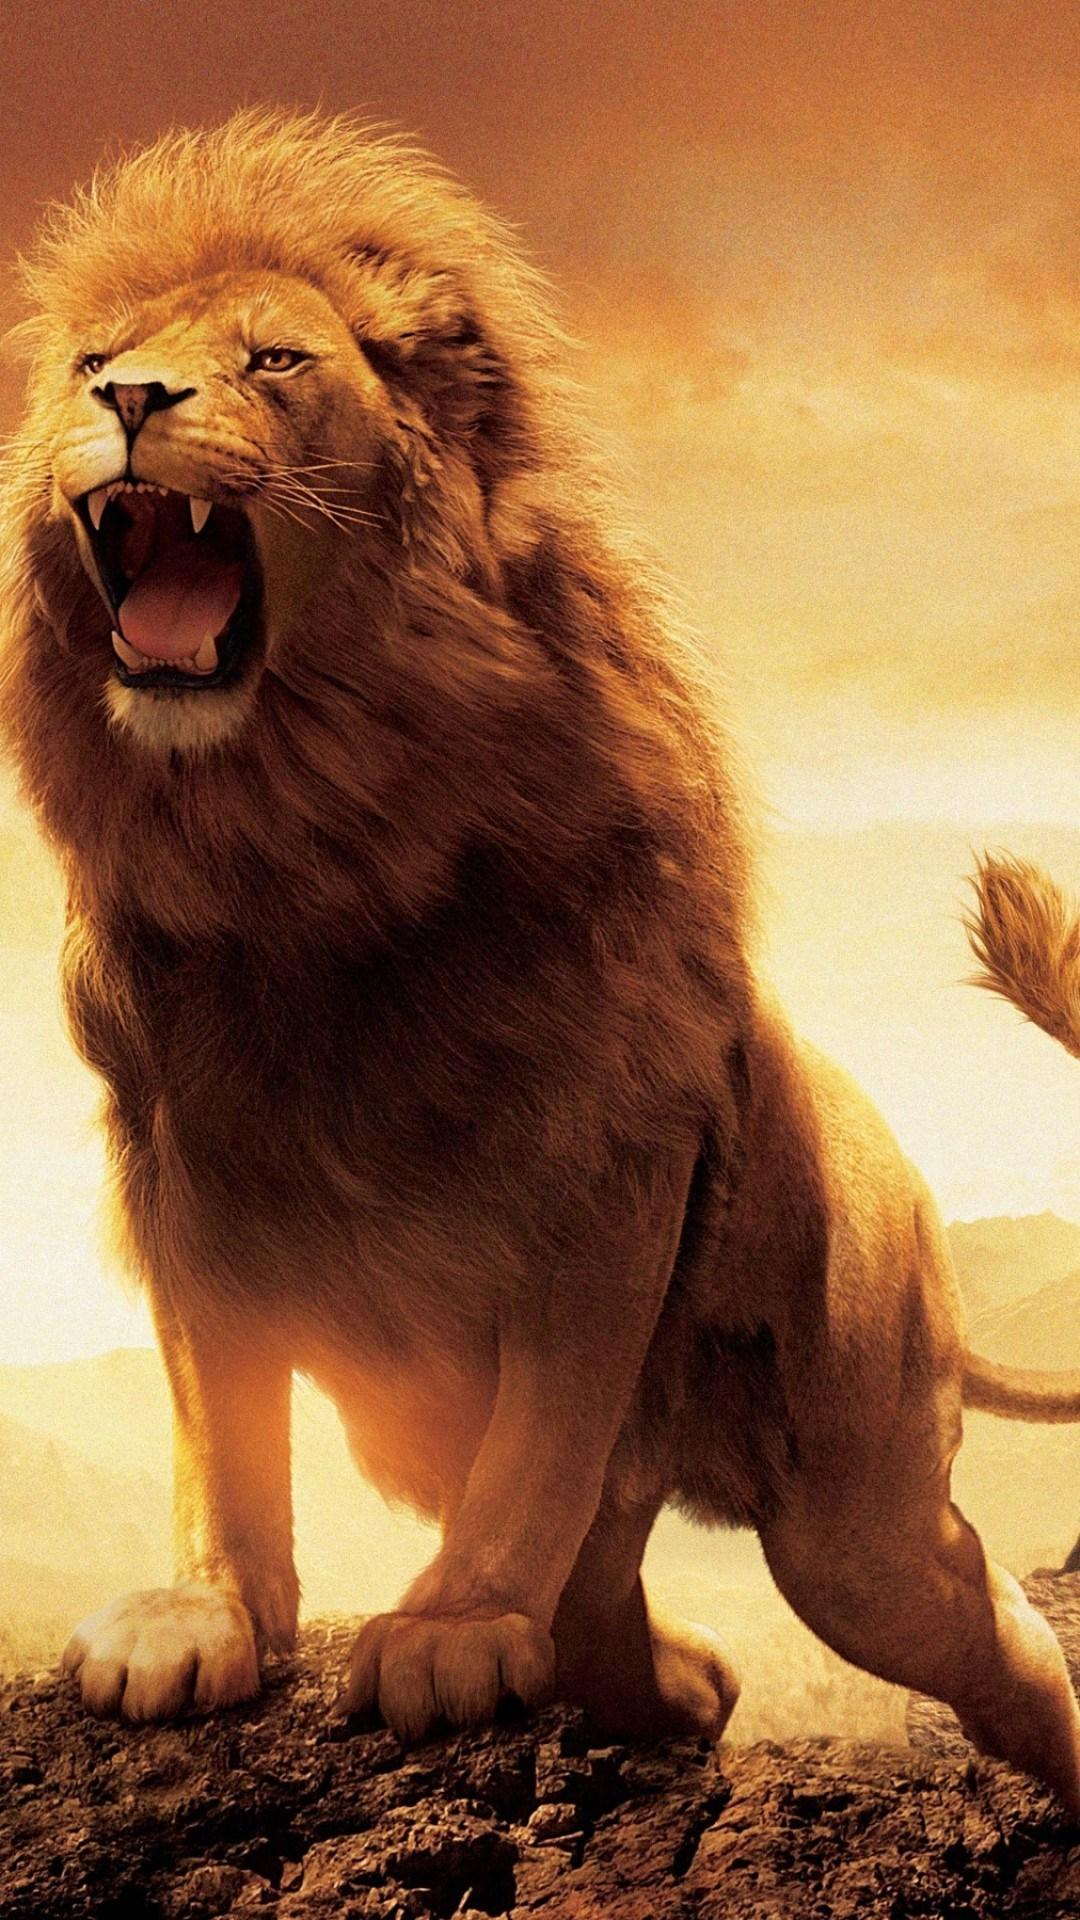 Lion Hd Wallpapers For Iphone Lion Wallpapers For Iphone 6